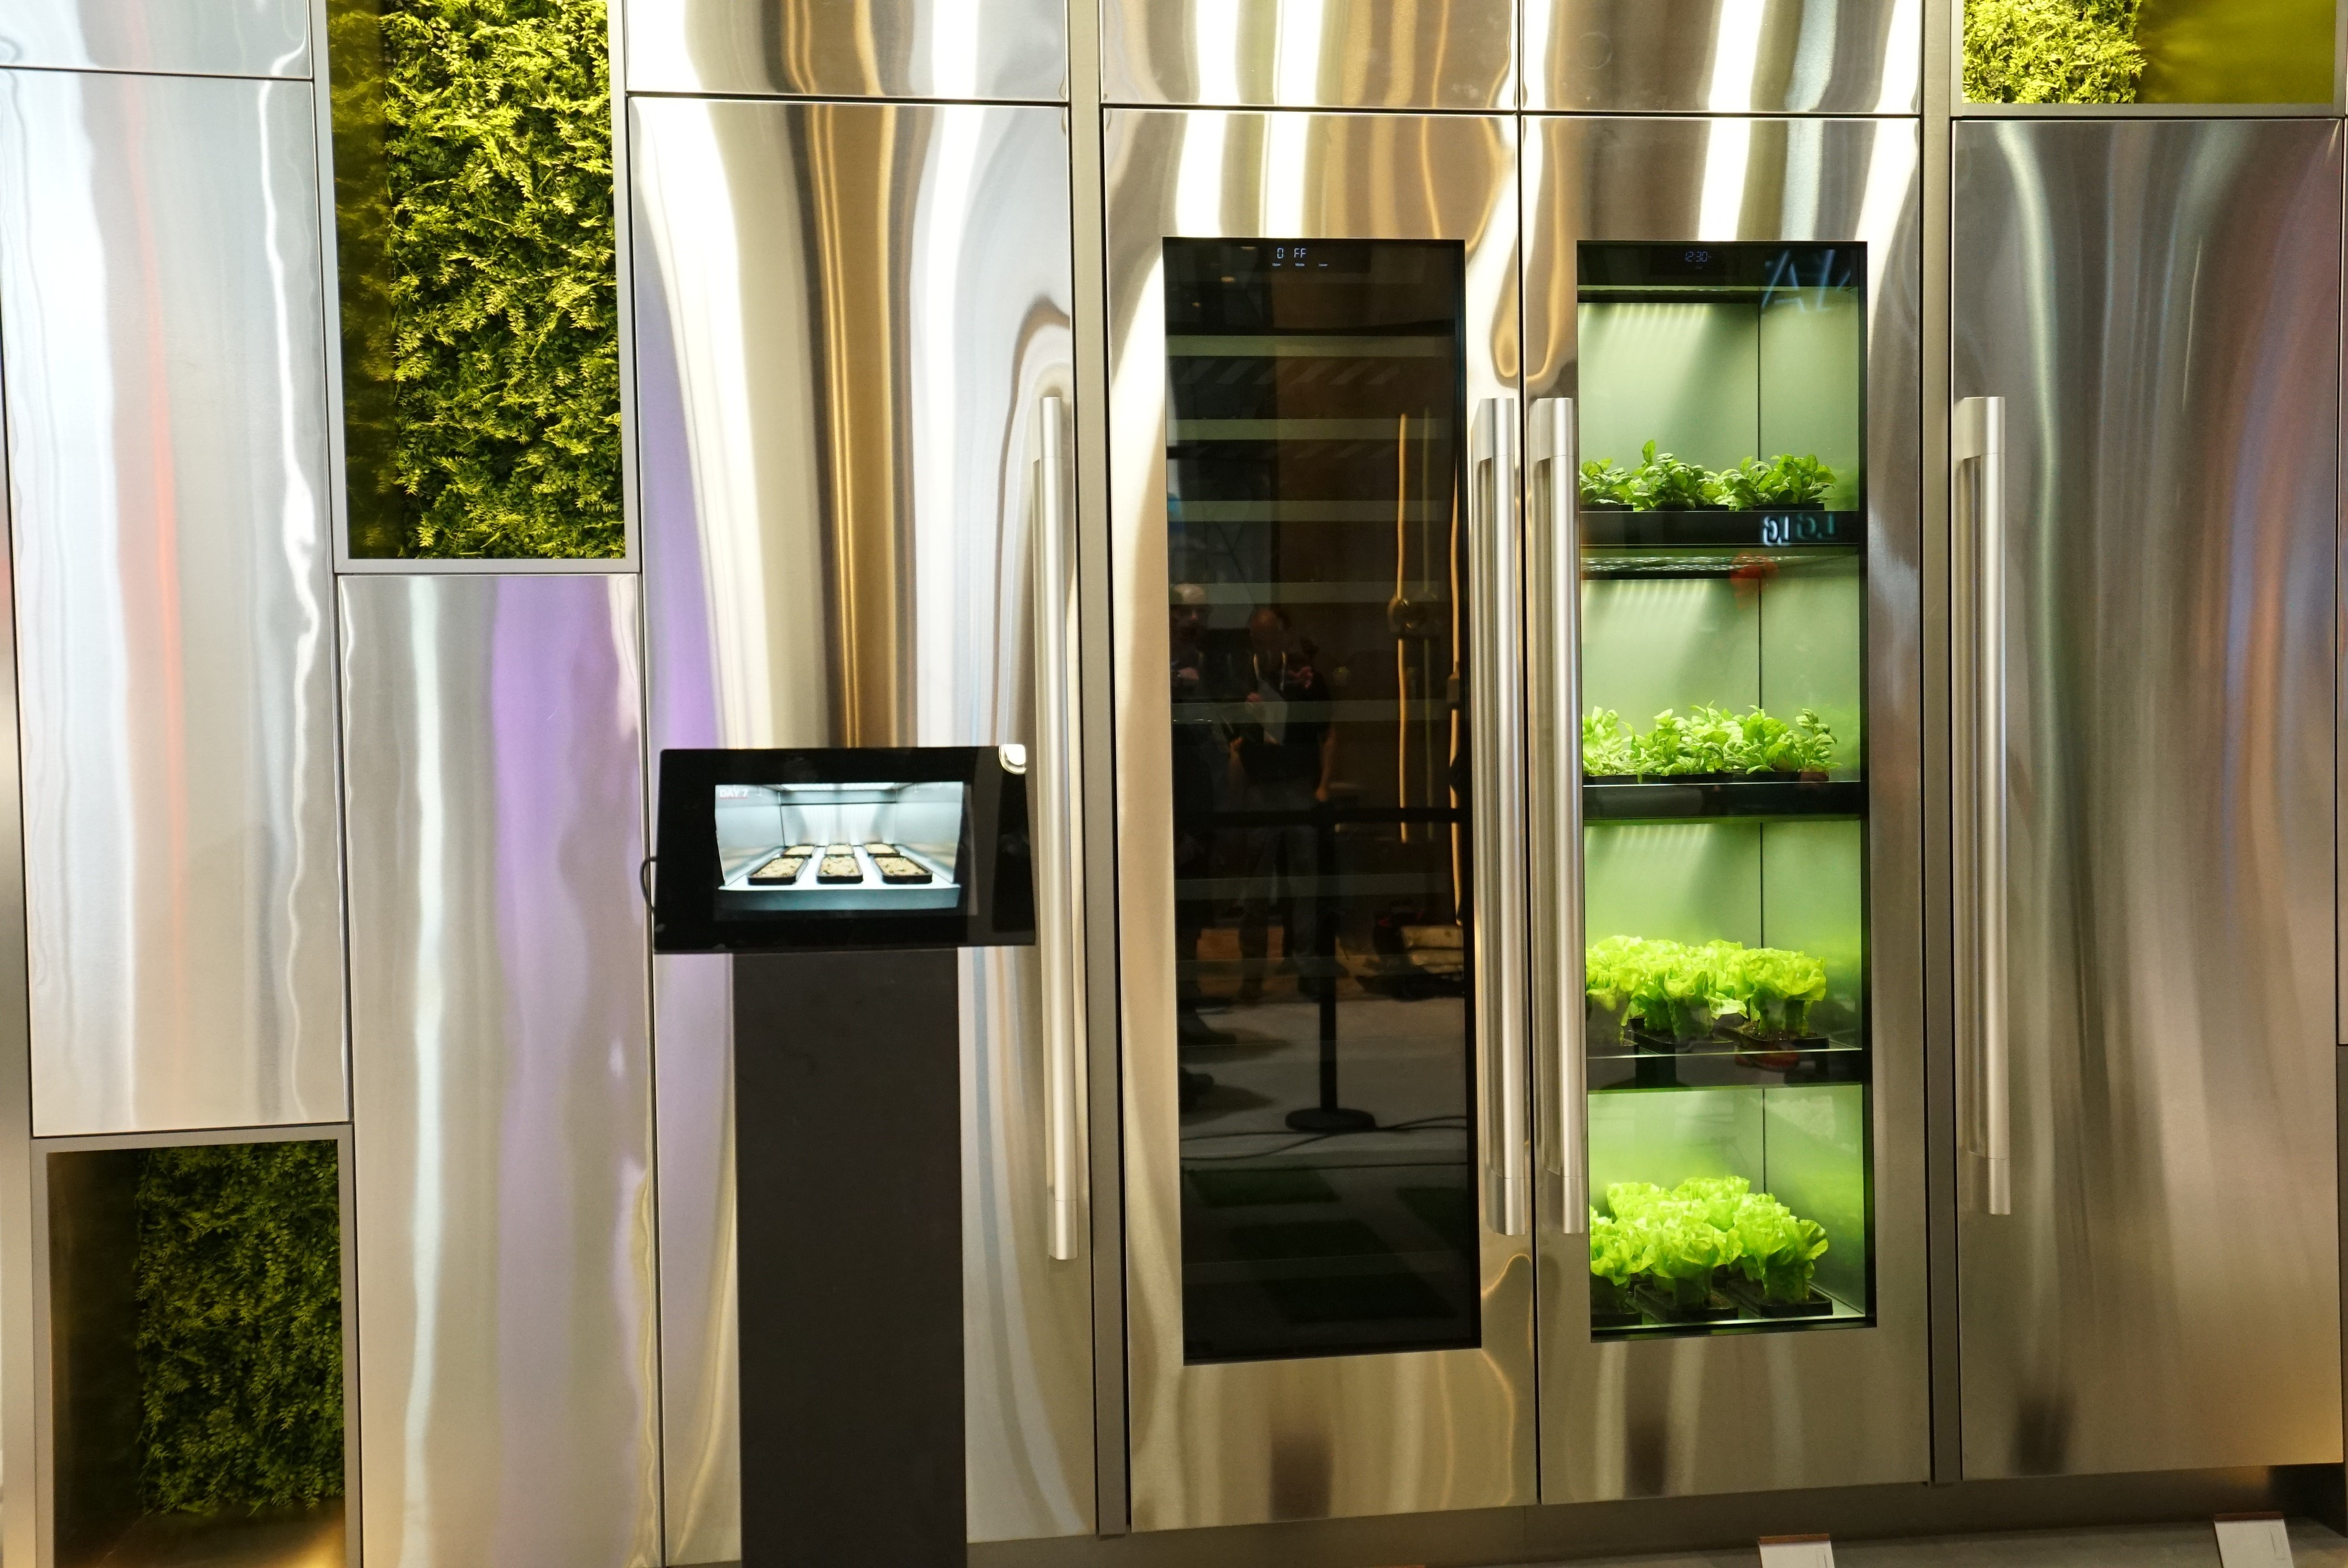 CES 2020 LG THINQ HOME INDOOR GARDENING APPLIANCE (1)